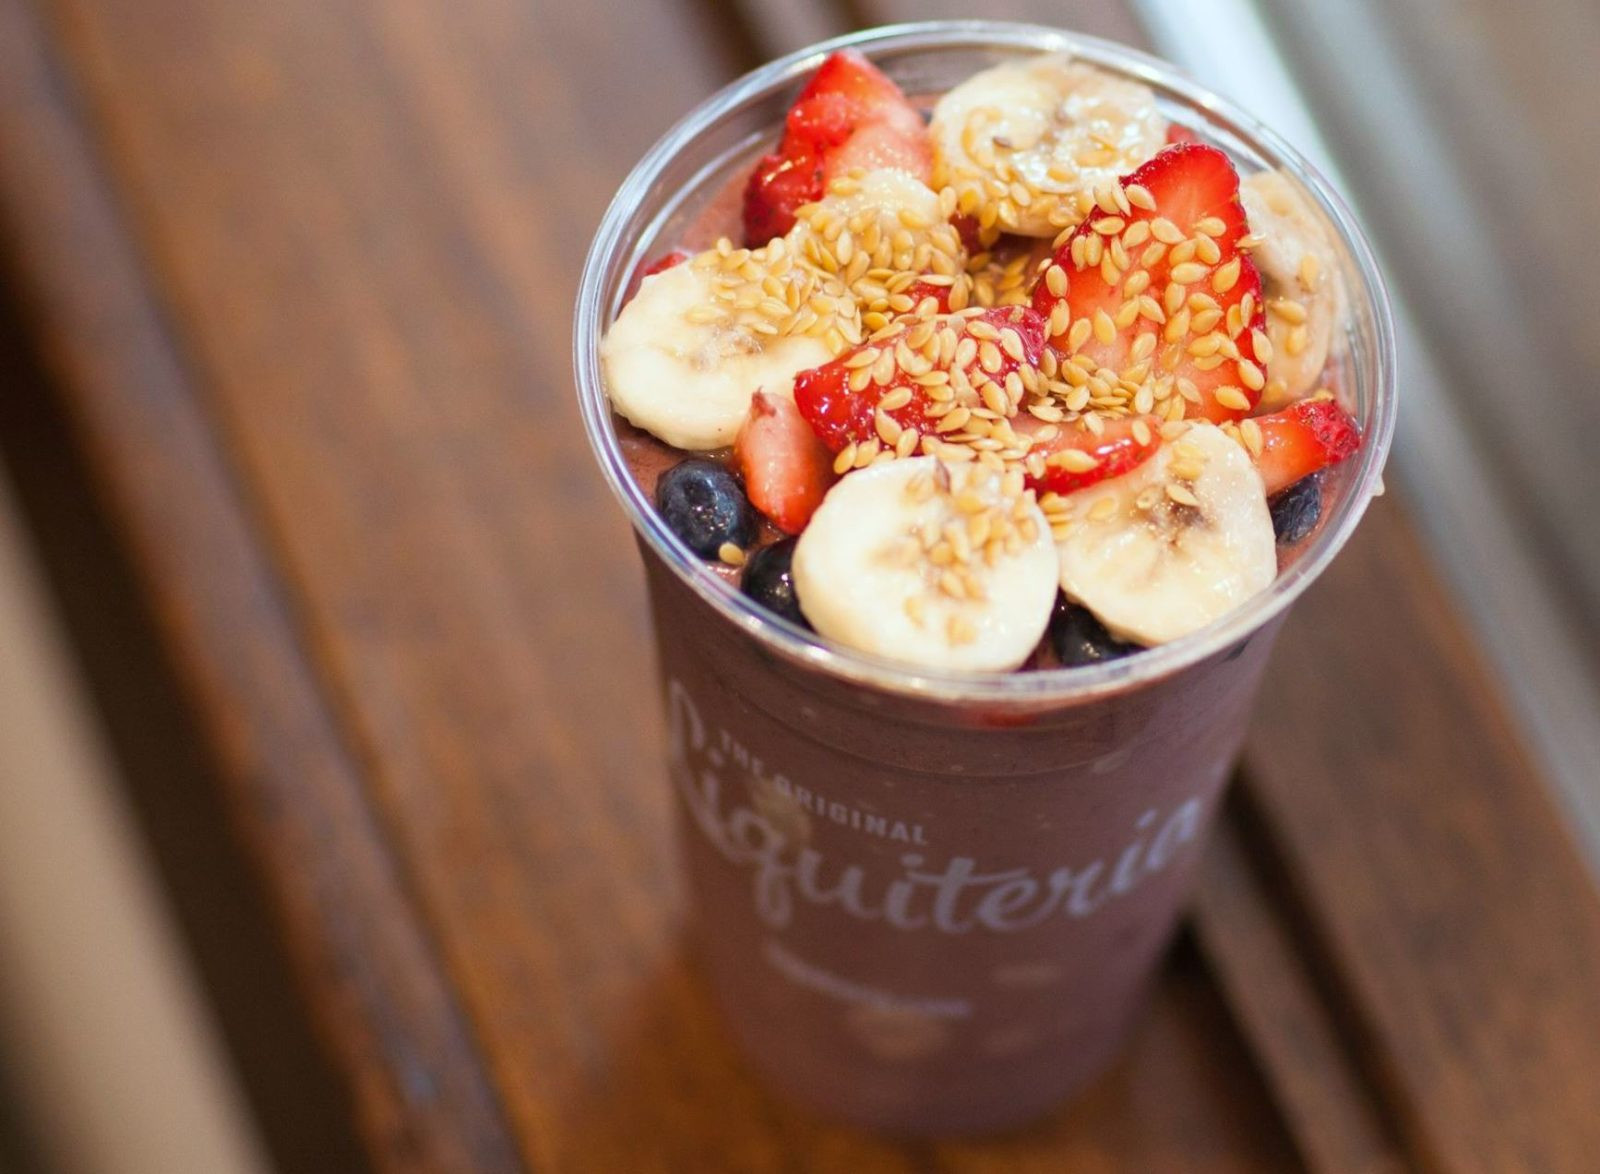 Healthy Breakfast New York  13 Spots For Healthy And Delicious Acai Bowls in NYC